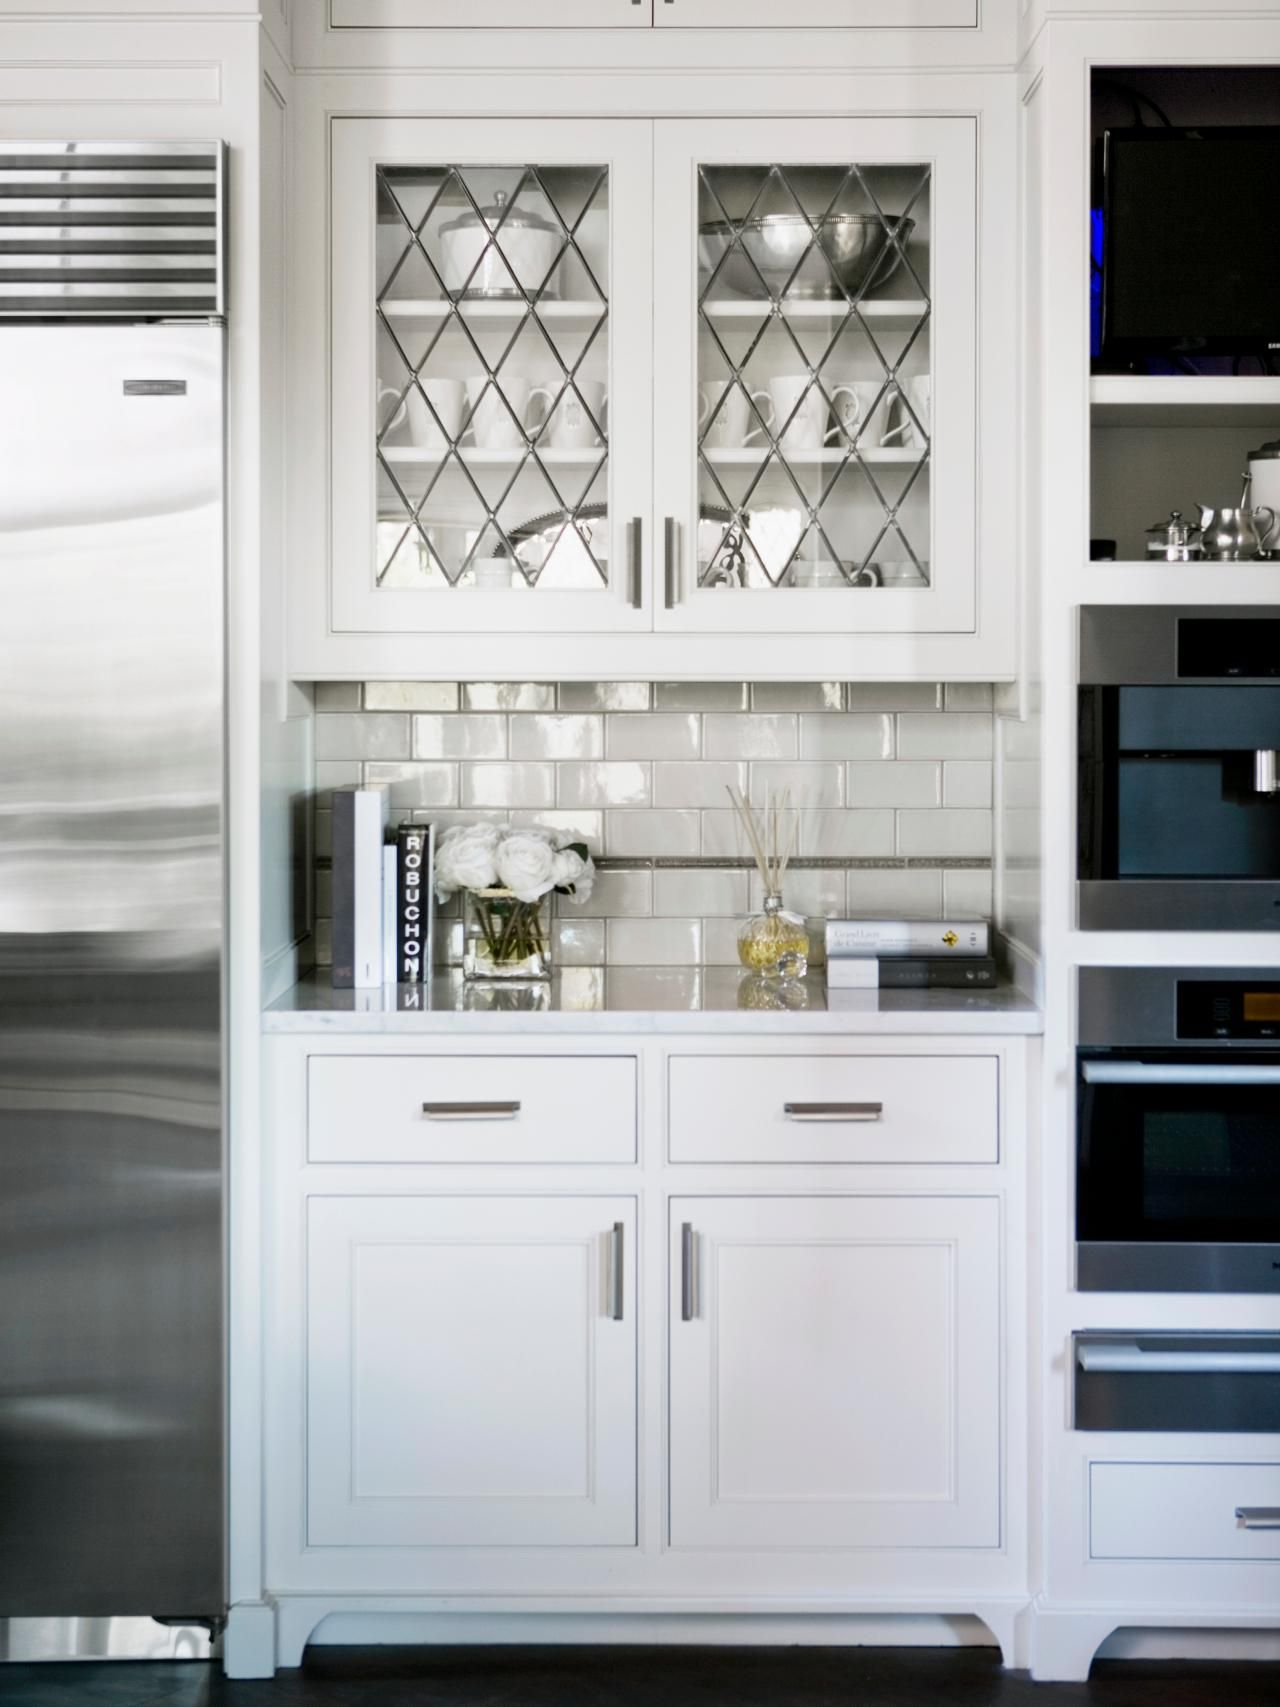 Glass-front cabinets hang above a subway tile backsplash in this ...